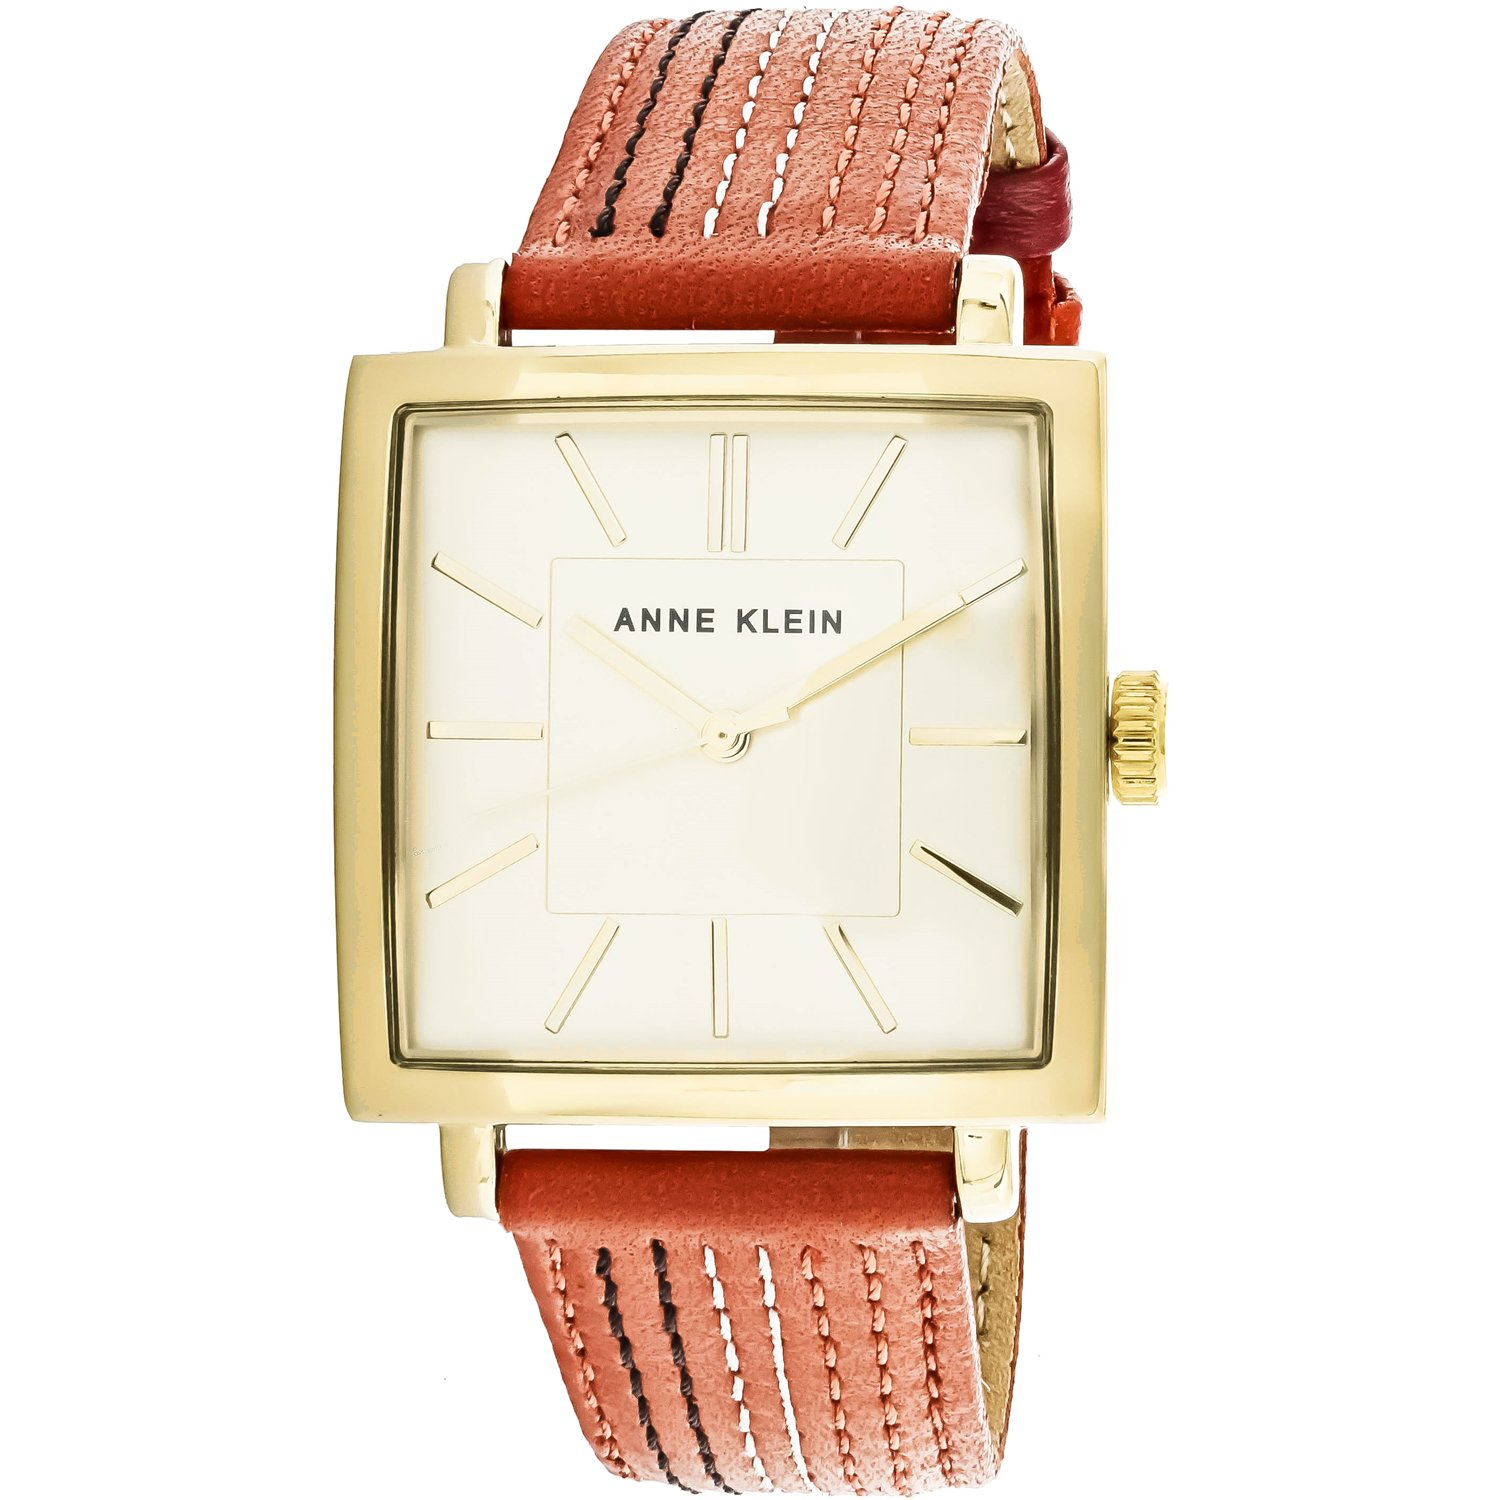 Anne Klein Women's AK-2740CHOR Gold Leather Japanese Quartz Fashion Watch